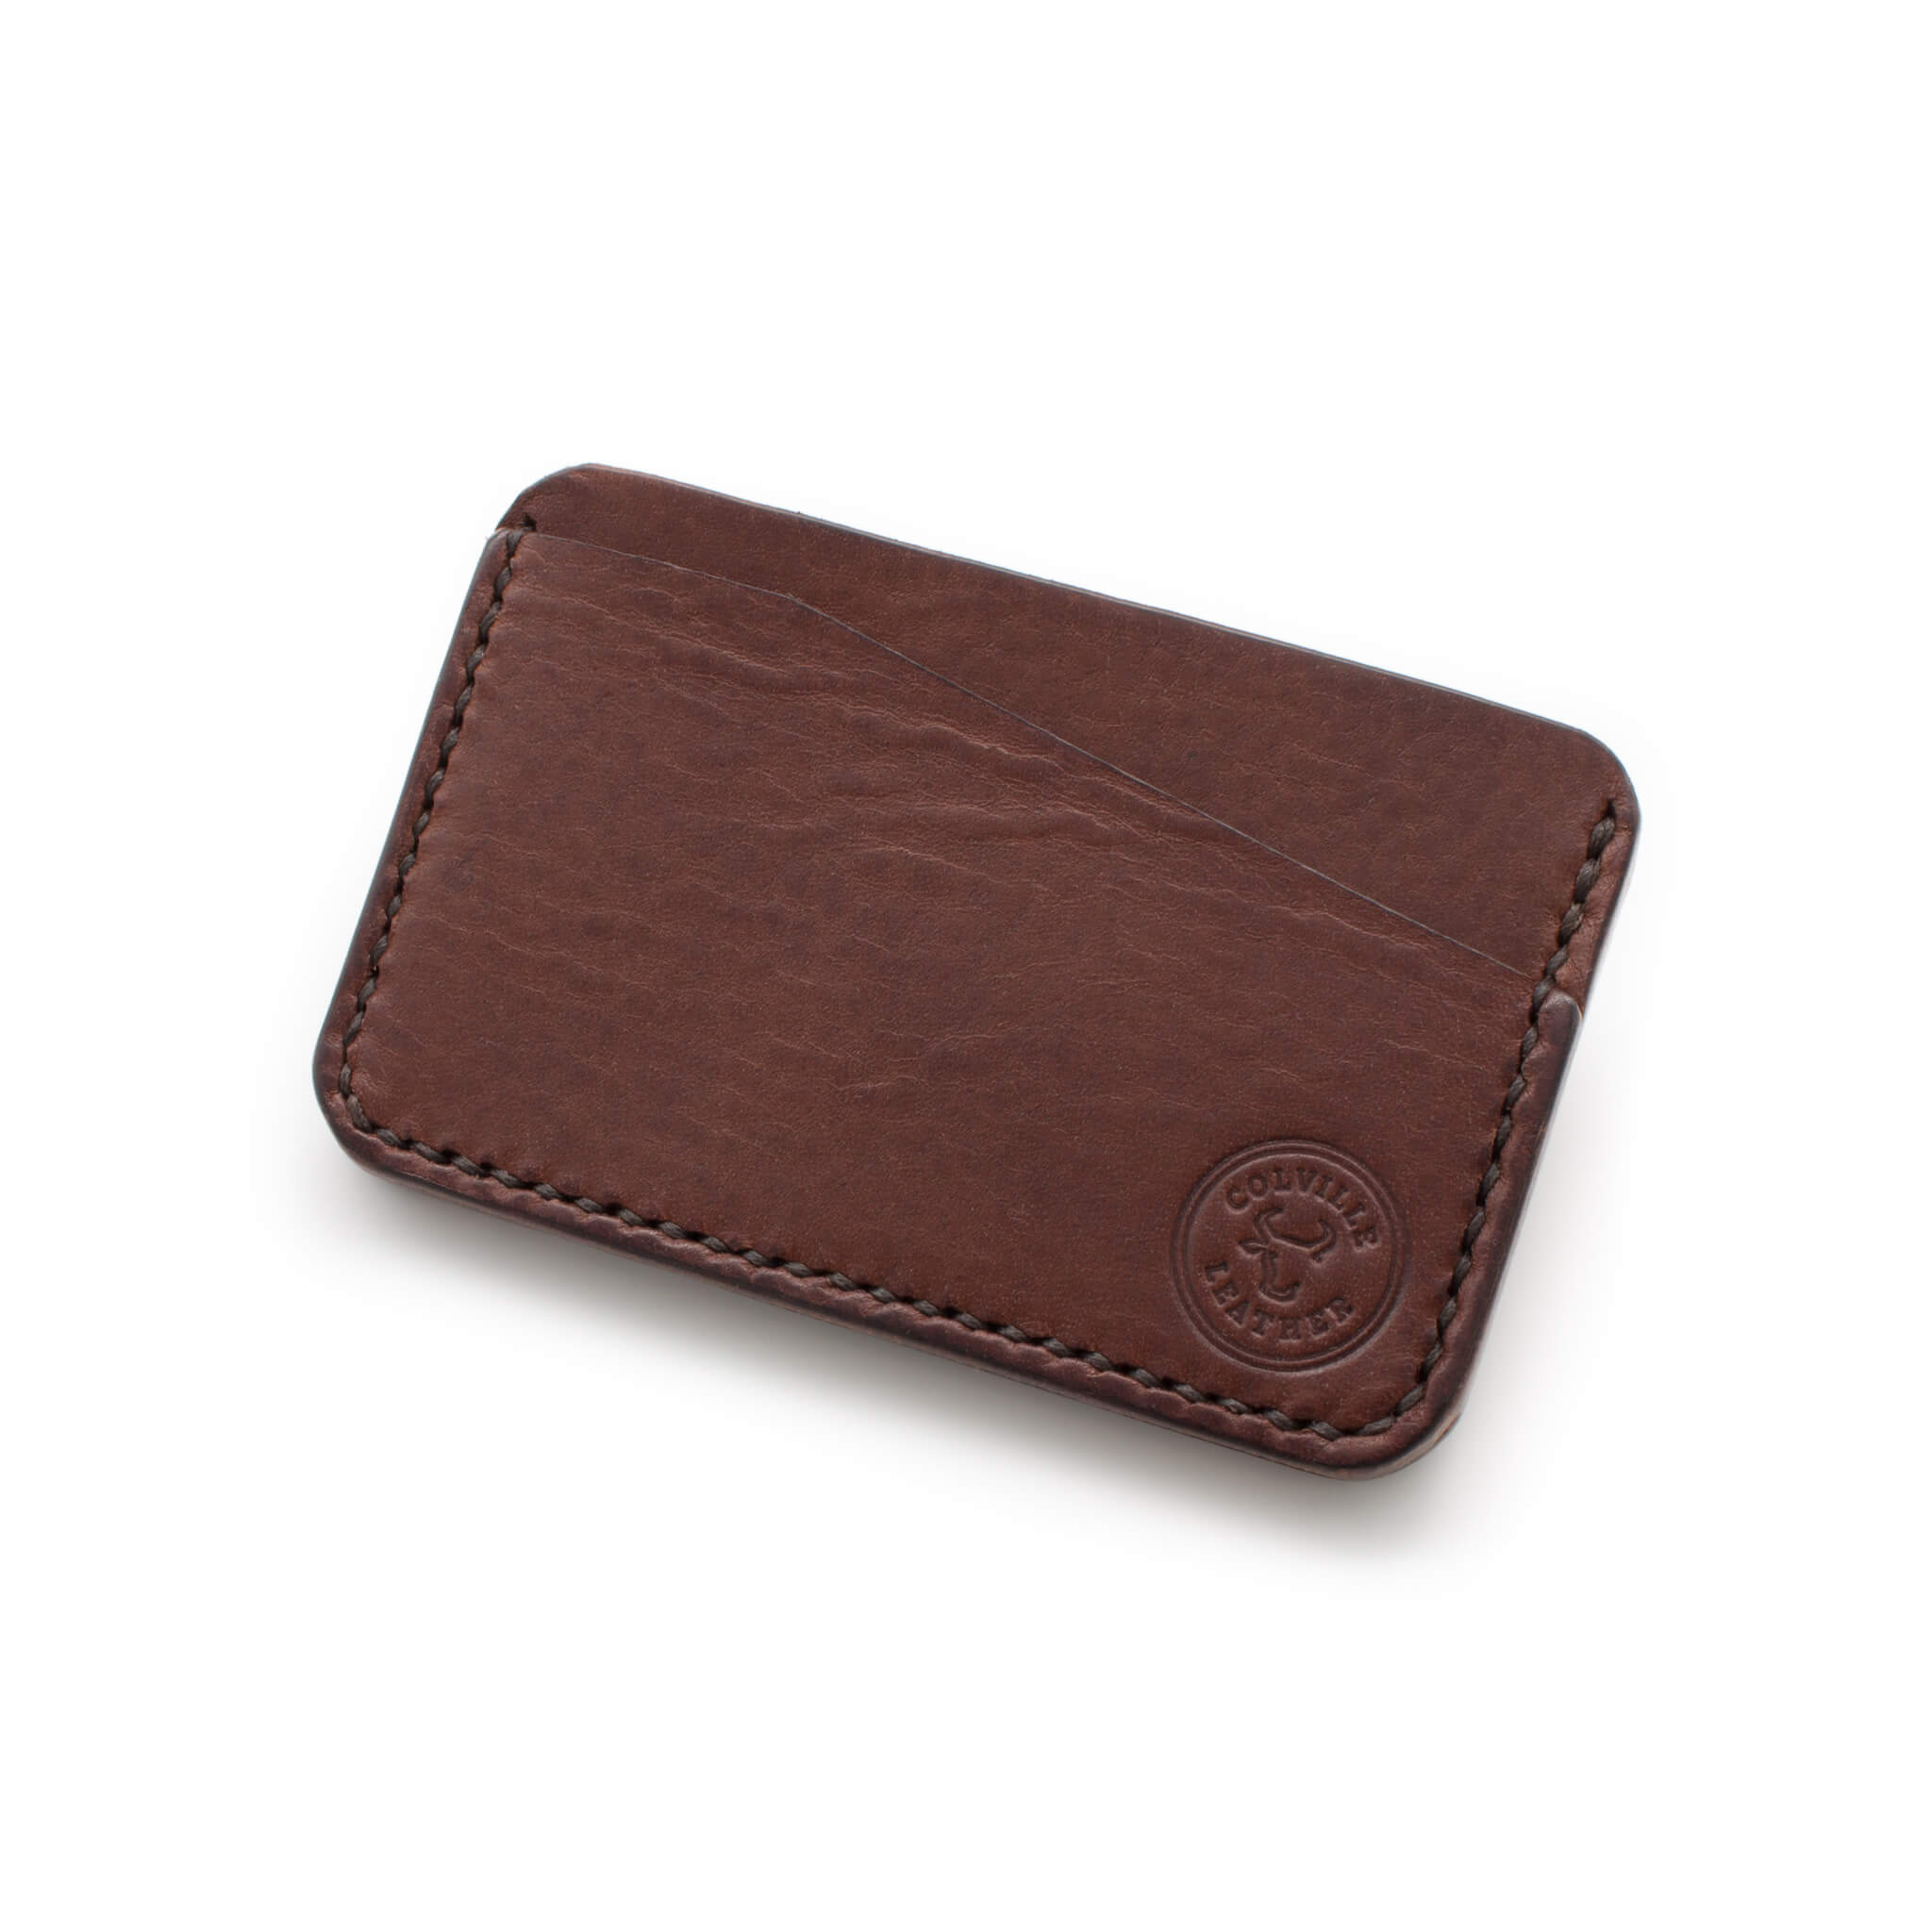 Hand stitched leather card holder, made in Devon